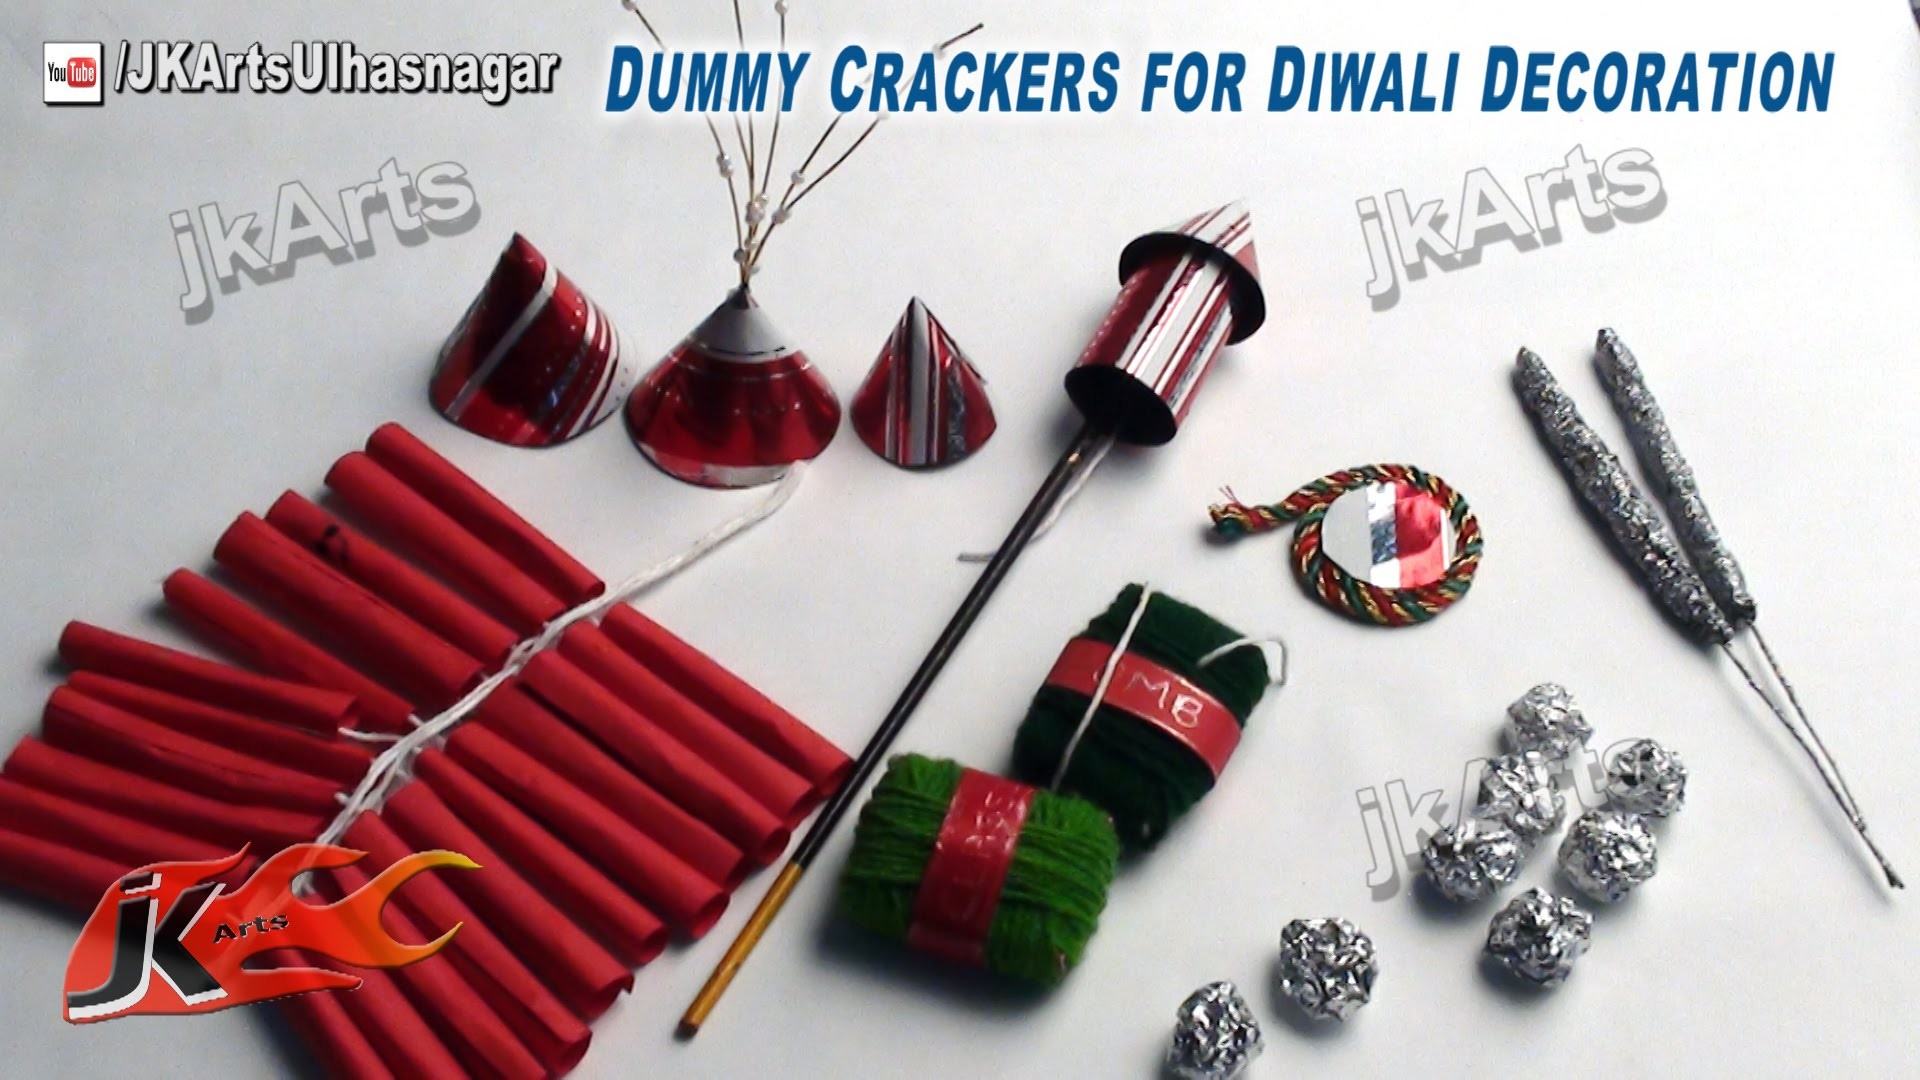 Diy how to make dummy crackers for diwali decoration for Art and craft for diwali decoration